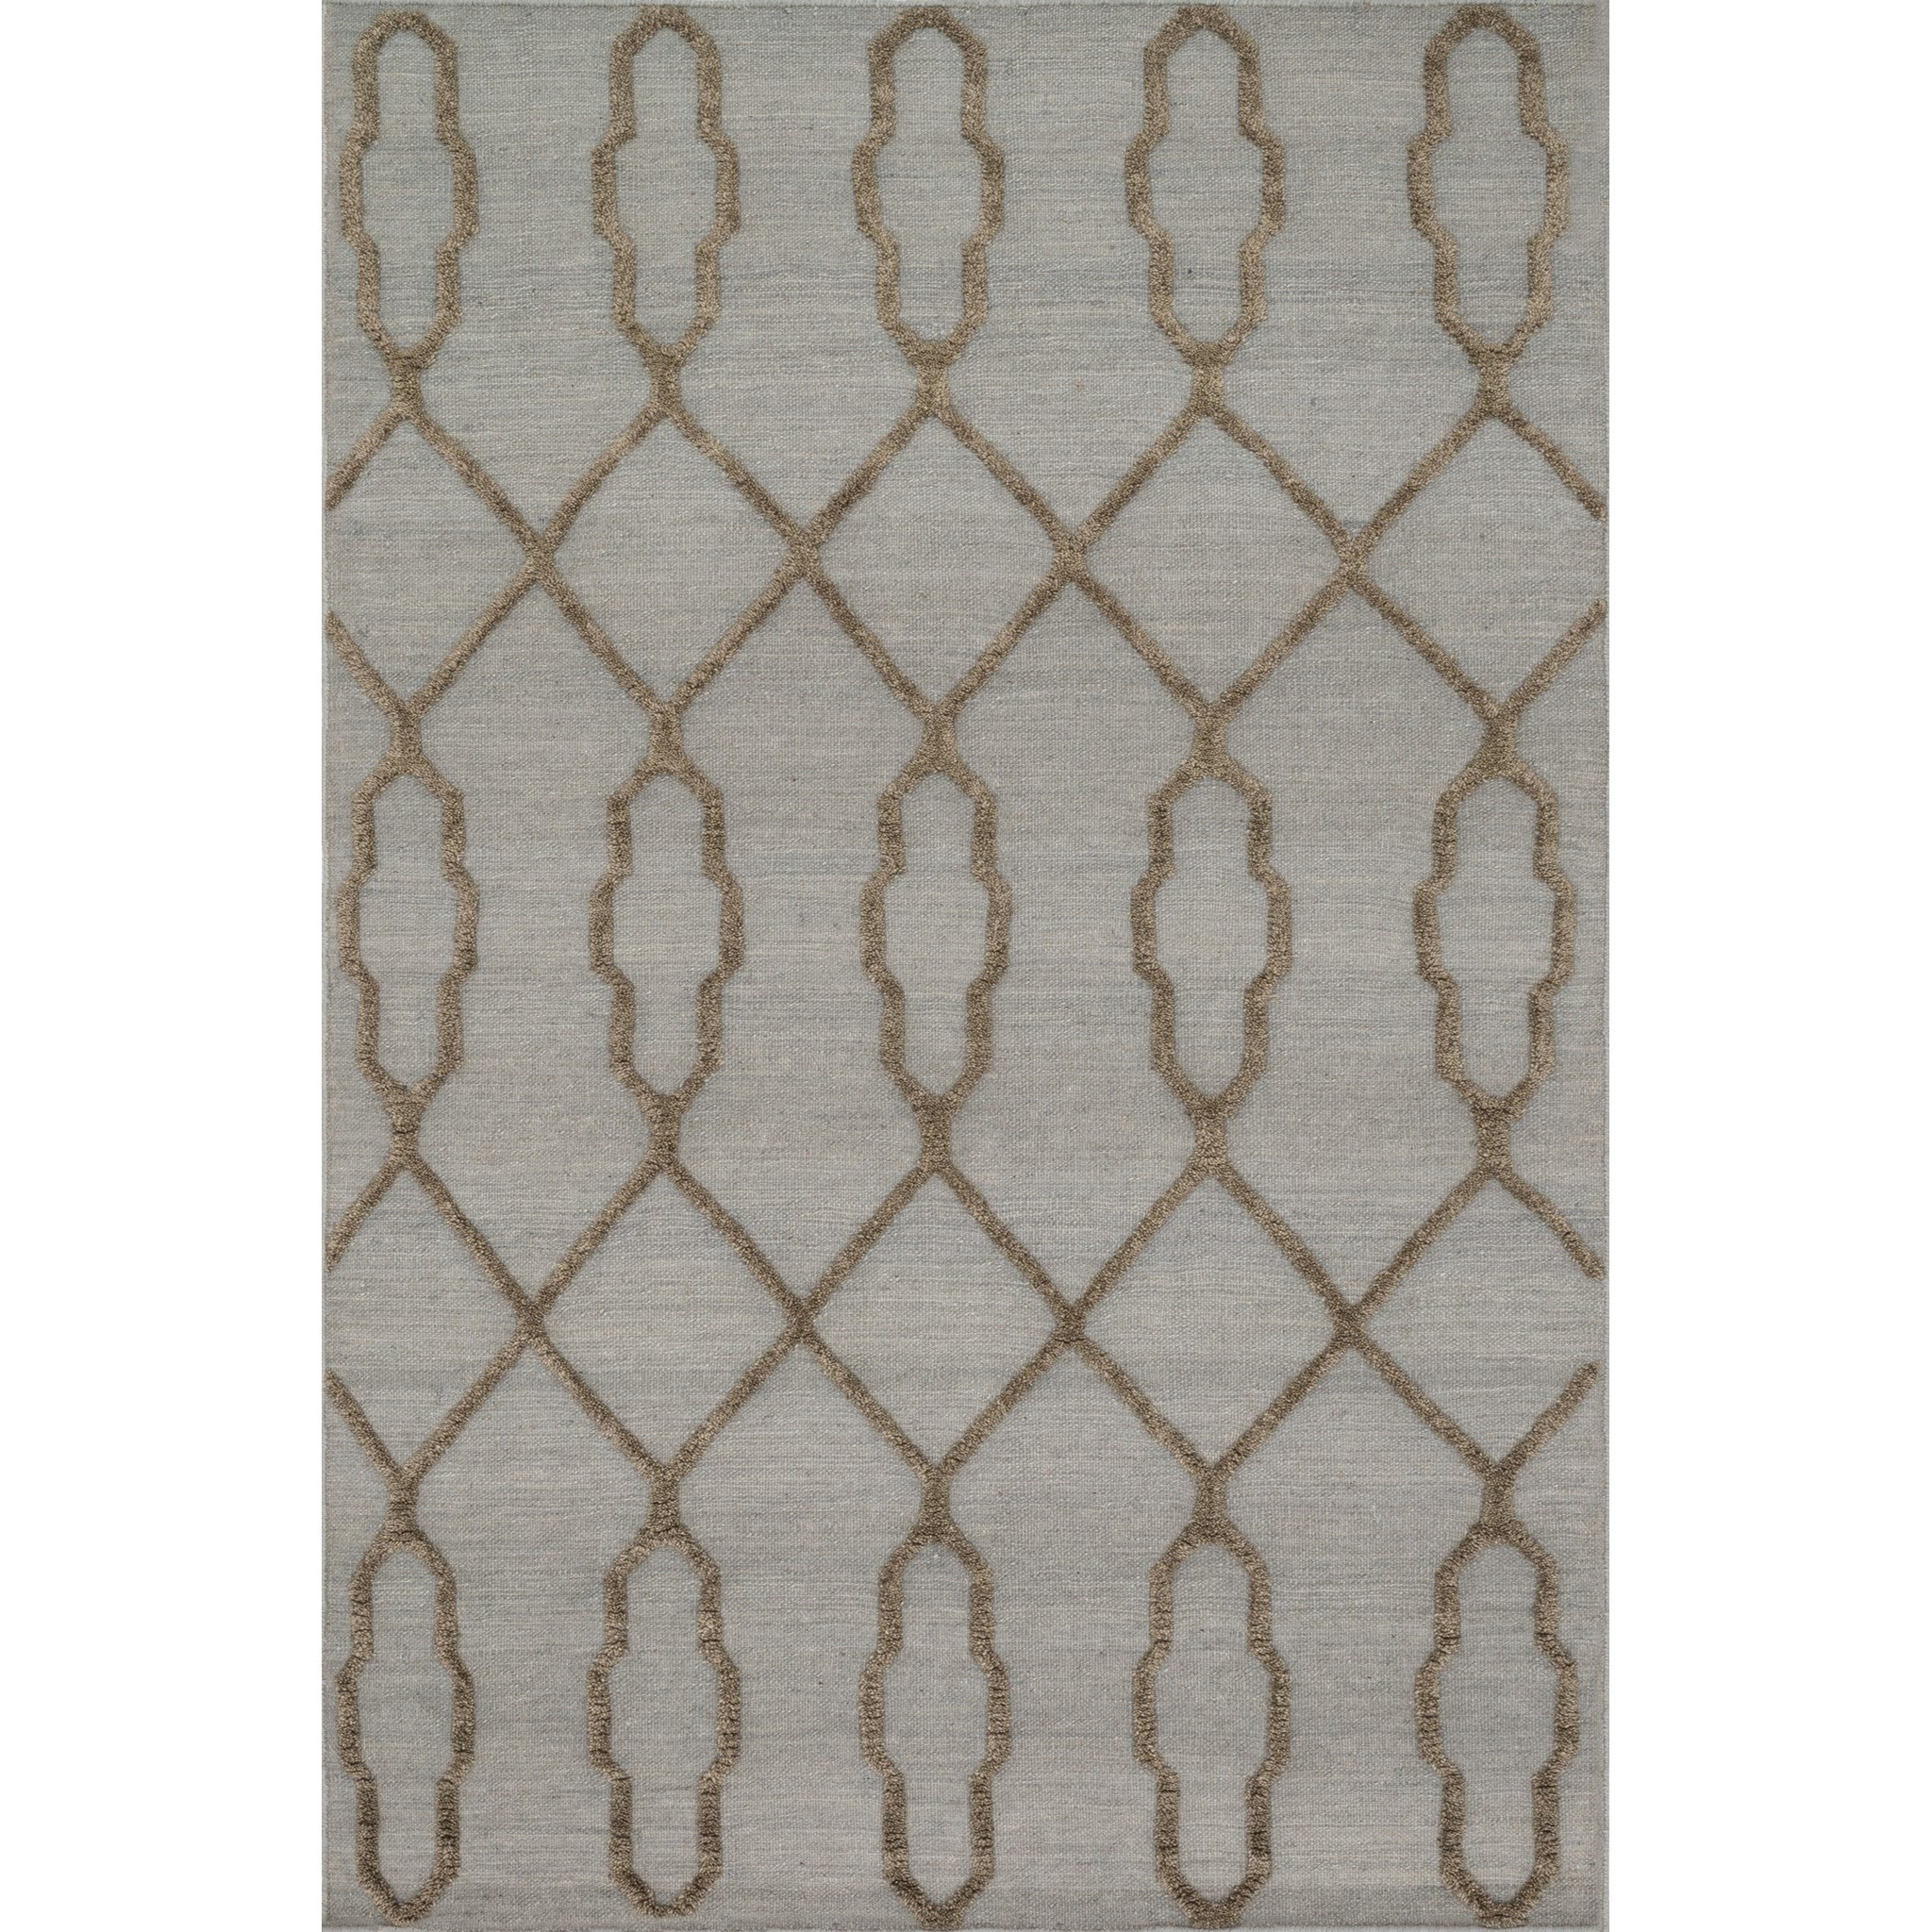 """Adler 9'-3"""" X 13' Area Rug by Loloi Rugs at Sprintz Furniture"""